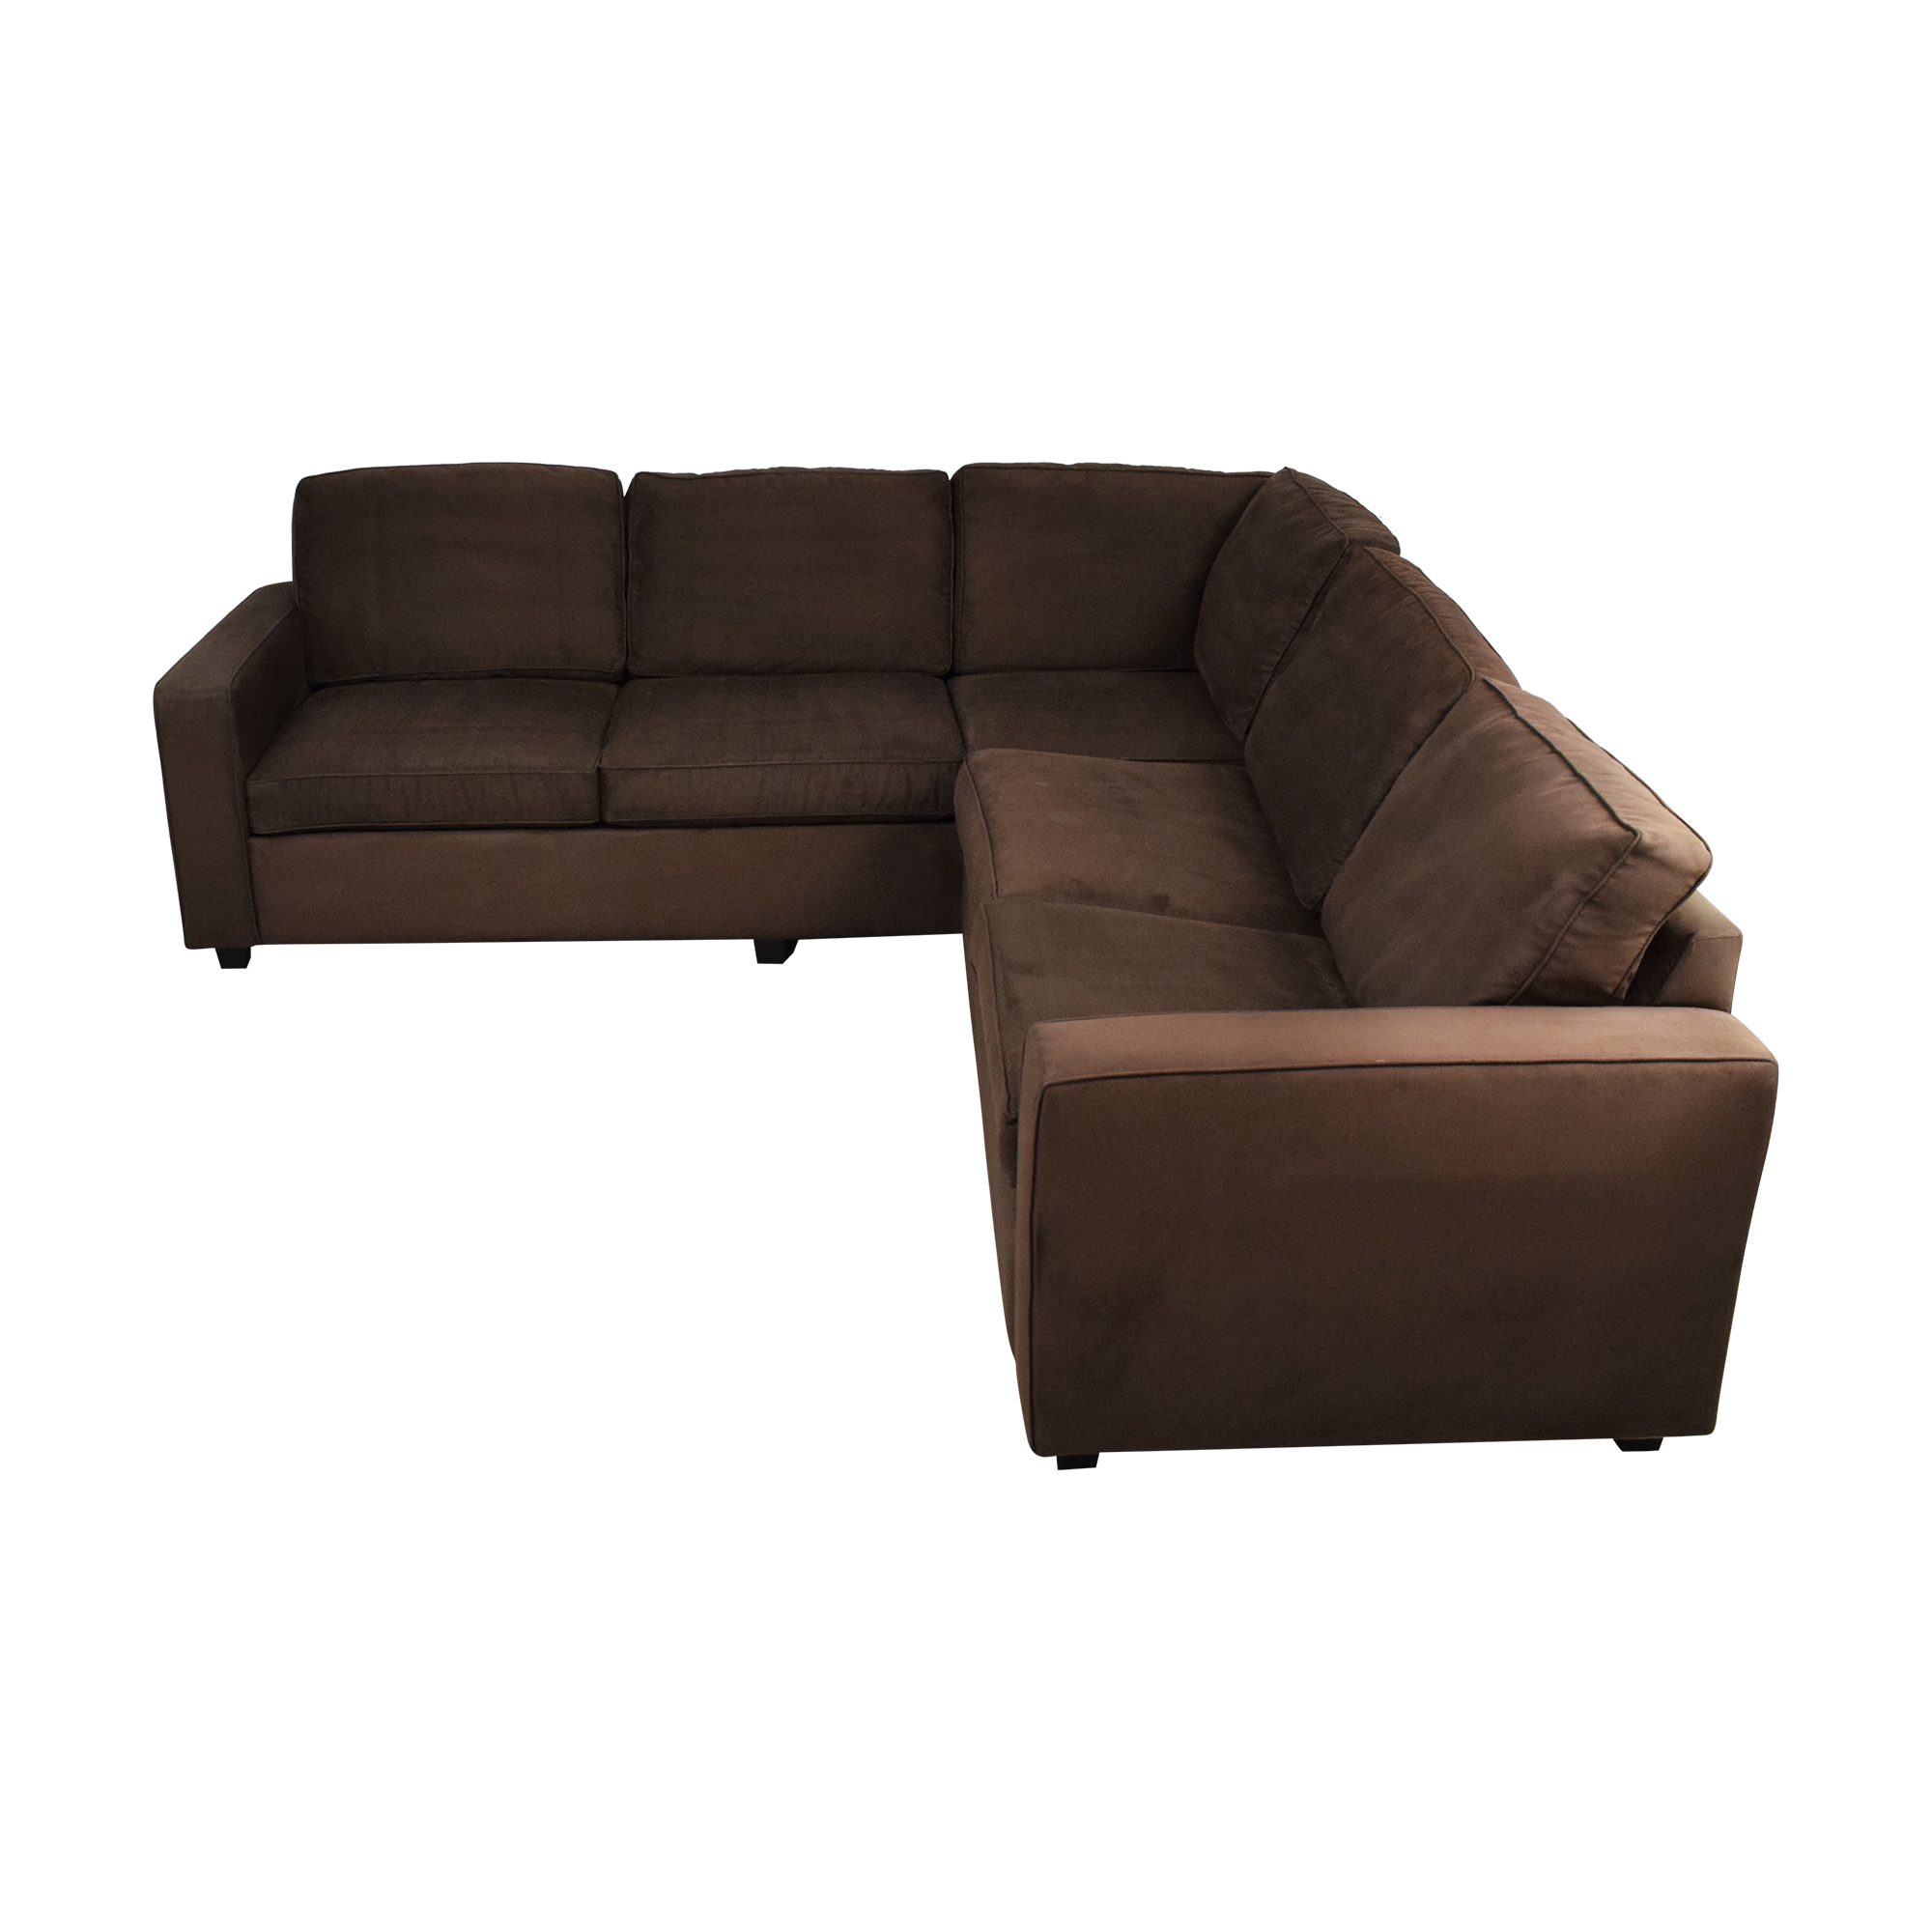 L-Shaped Sleeper Sofa for sale